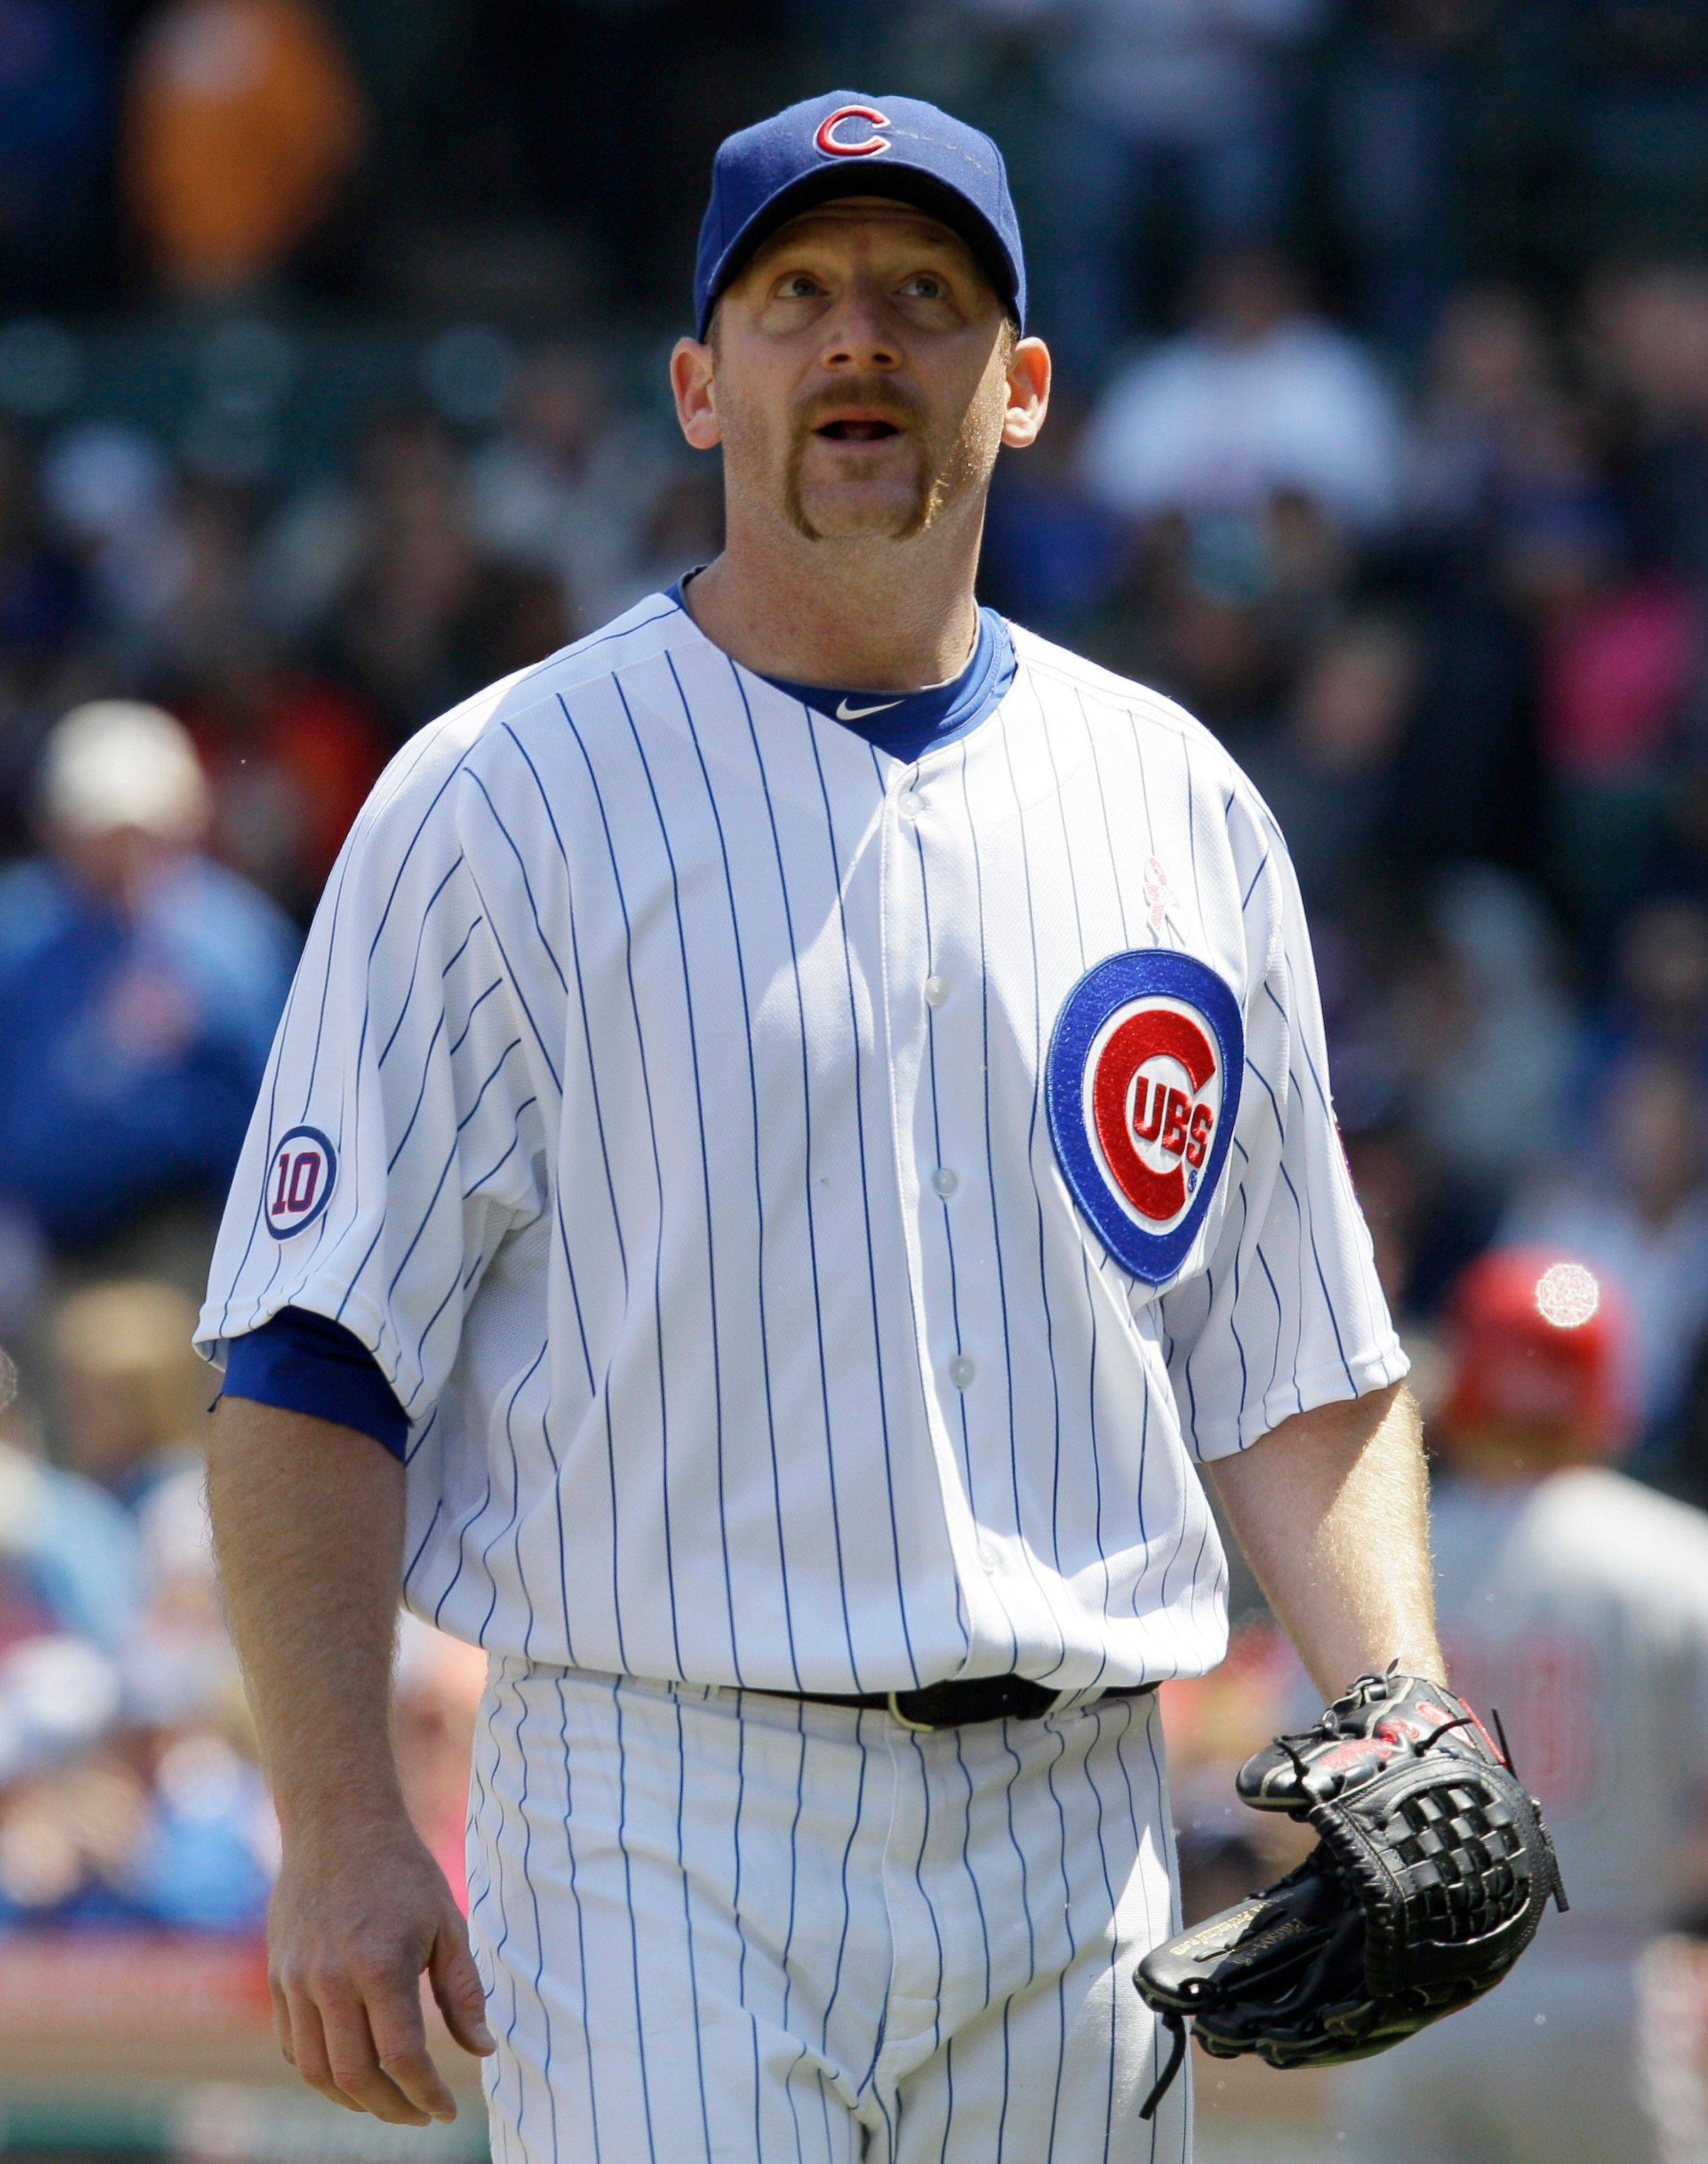 Cubs starter Ryan Dempster worked 7 strong innings Sunday at Wrigley Field, but he got no help from his offense in a 2-0 loss.